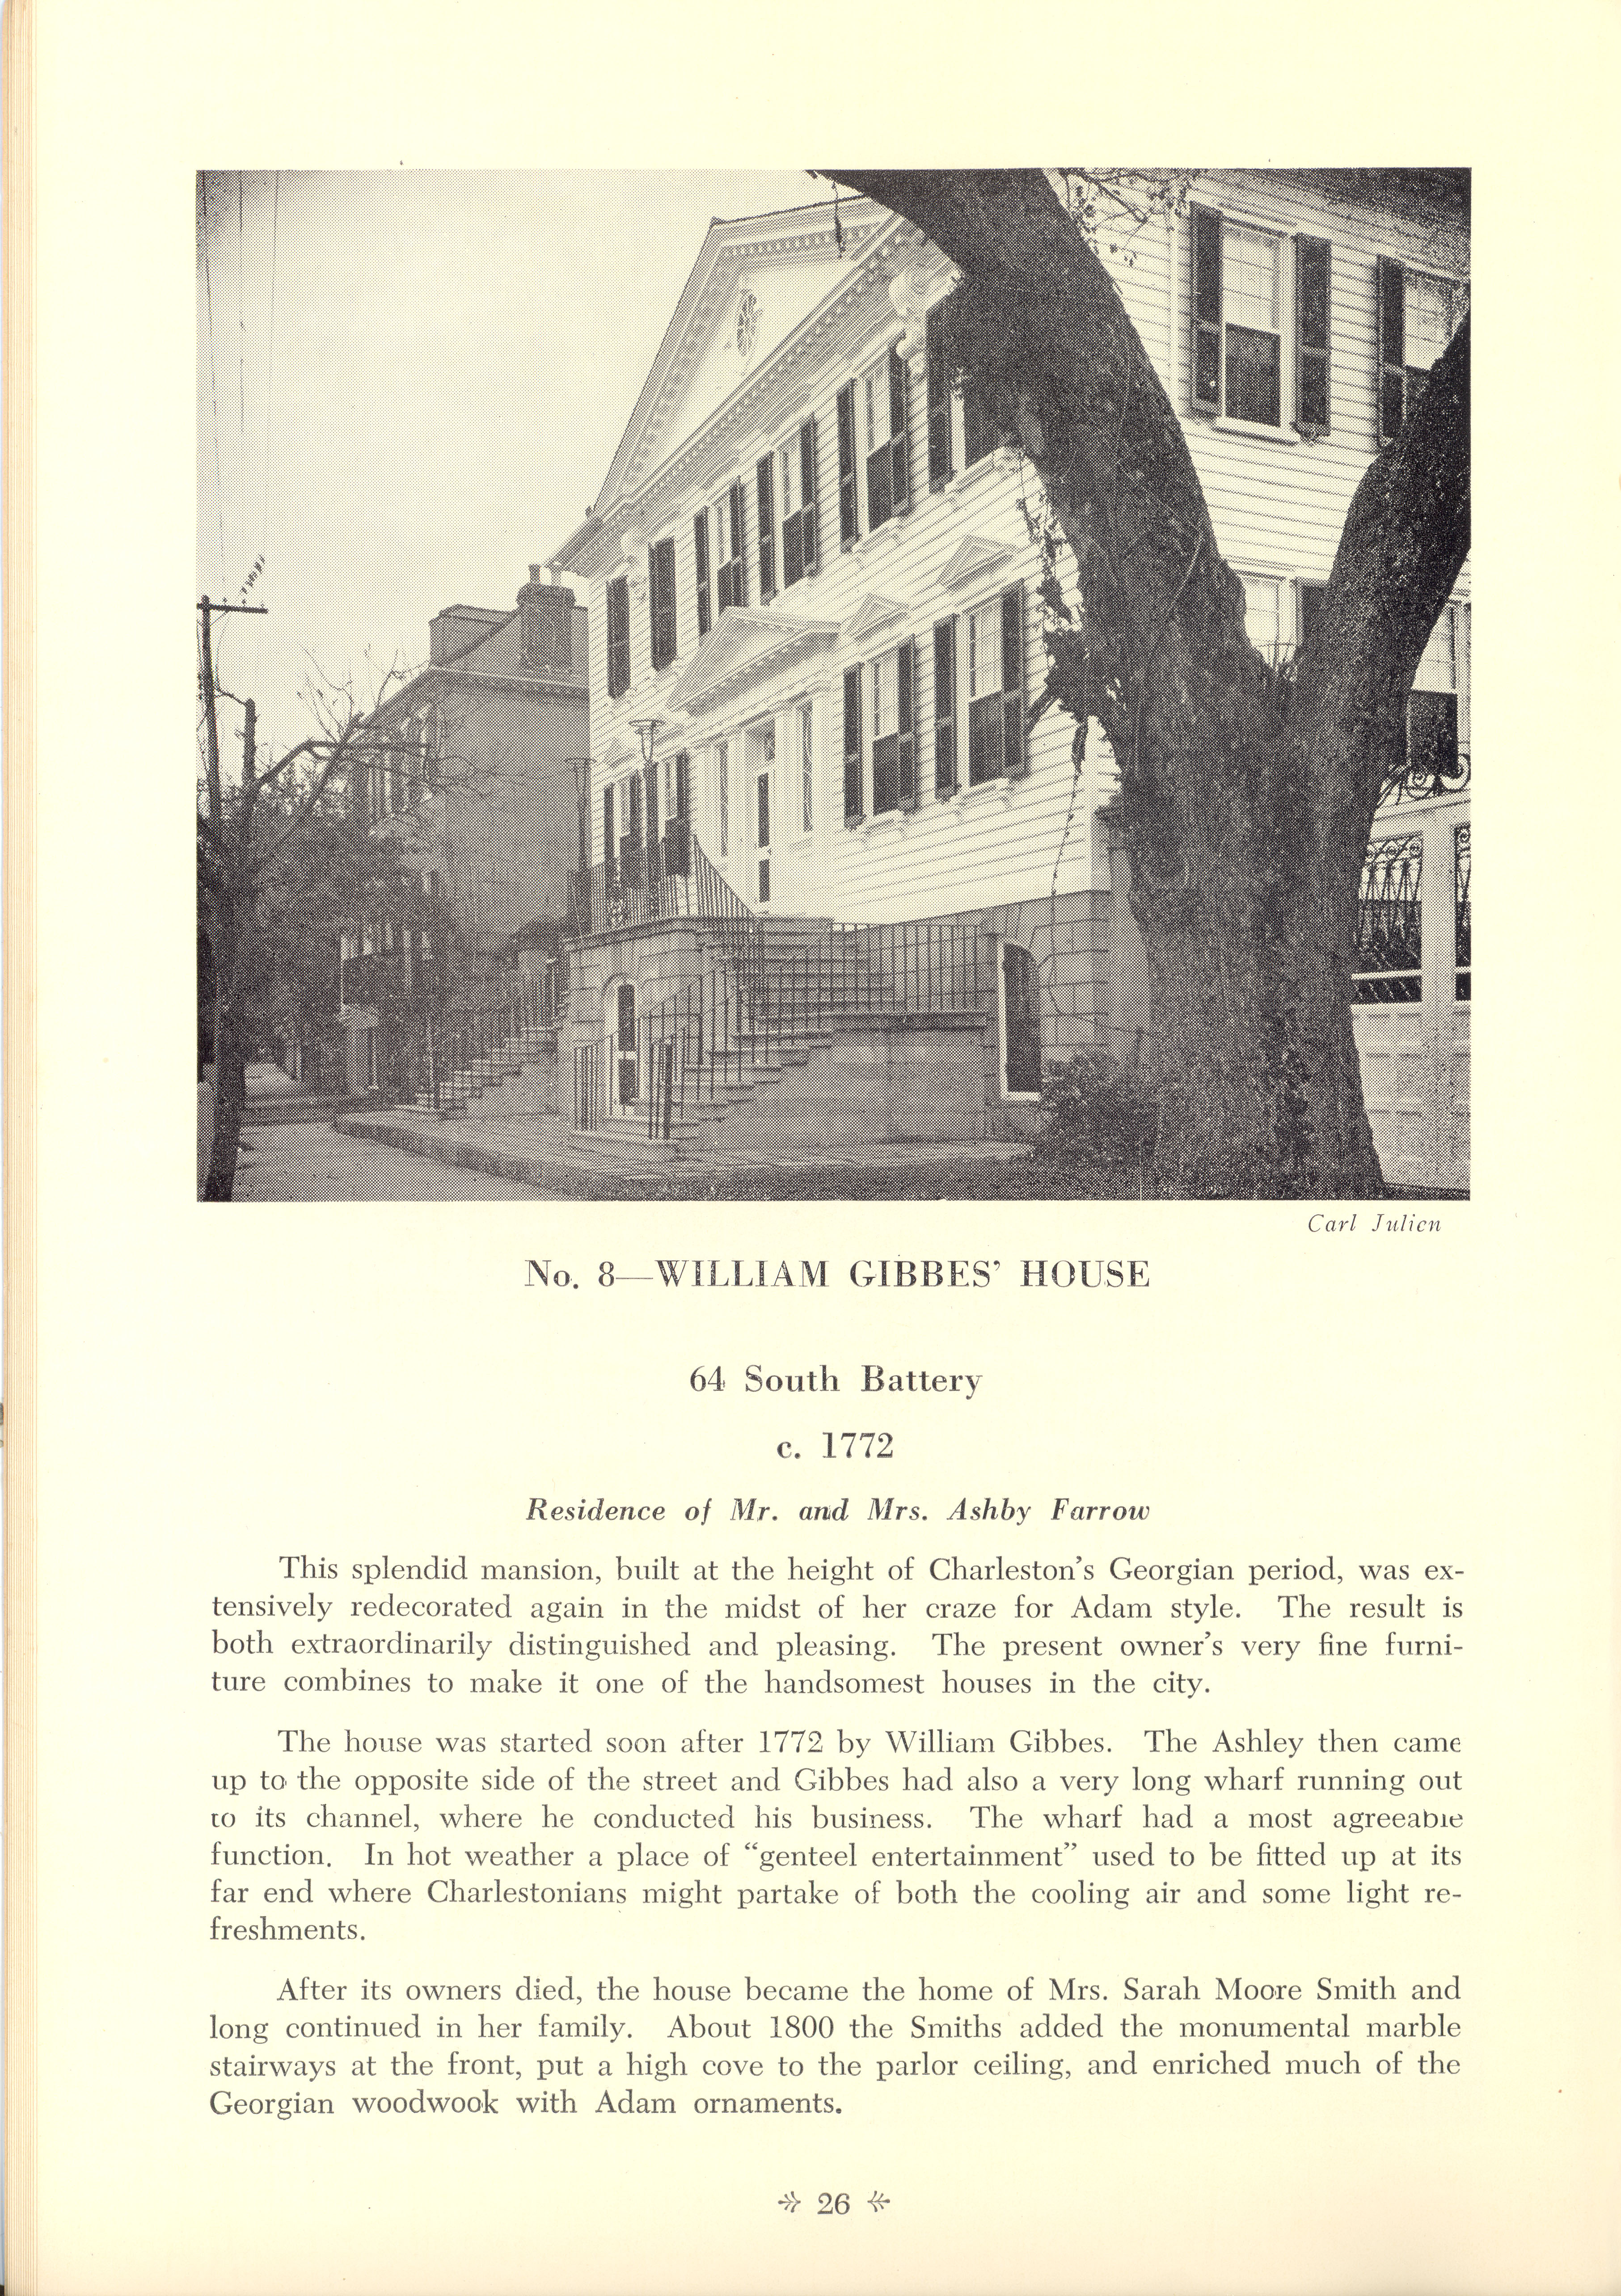 Page 26:  No. 8 - William Gibbes' House, 64 South Battery, c. 1772